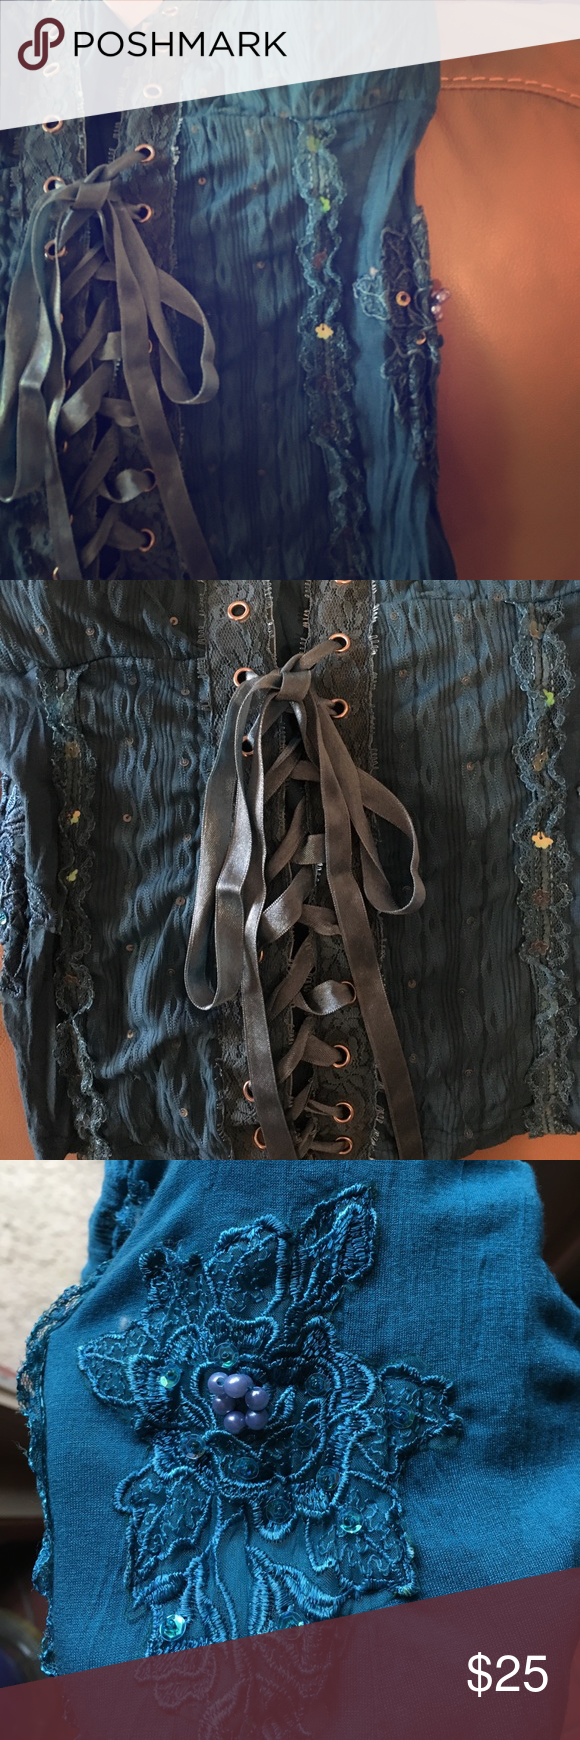 Lace up Corset Top This top has beautiful beaded details, built in padding on the bust and it laces up in the front like a corset. Worn once 💕 misomiso Tops Blouses